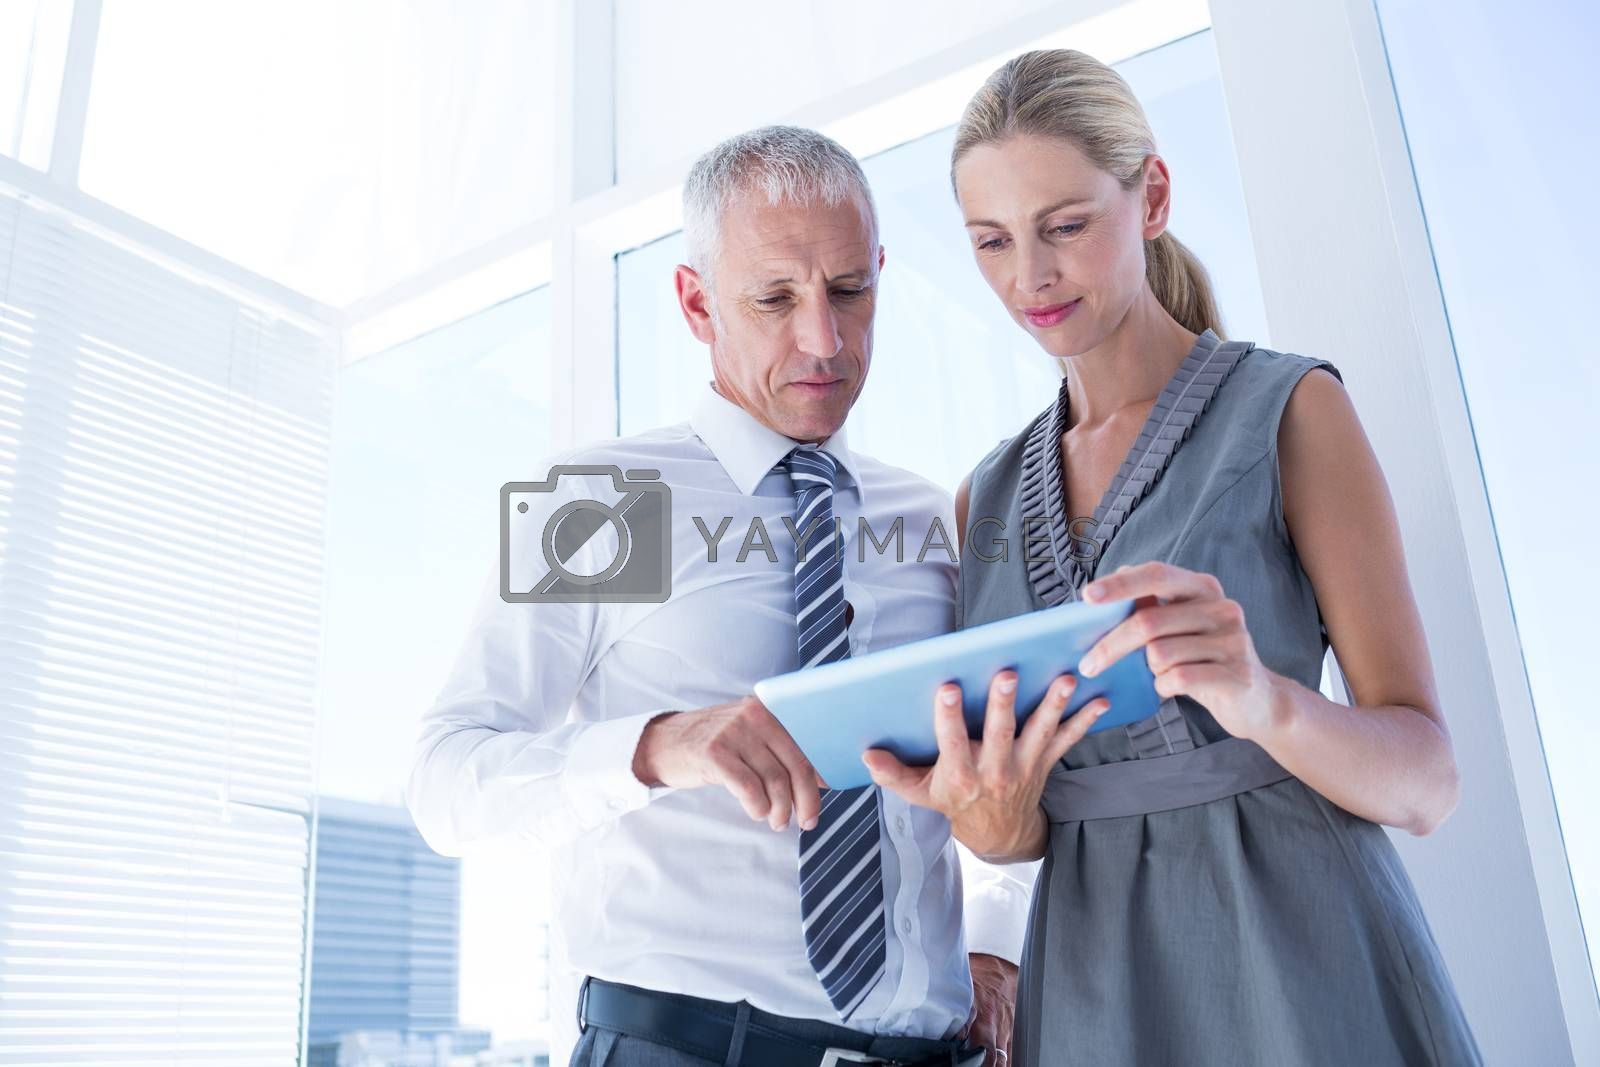 Royalty free image of Business people discussing over a digital tablet by Wavebreakmedia